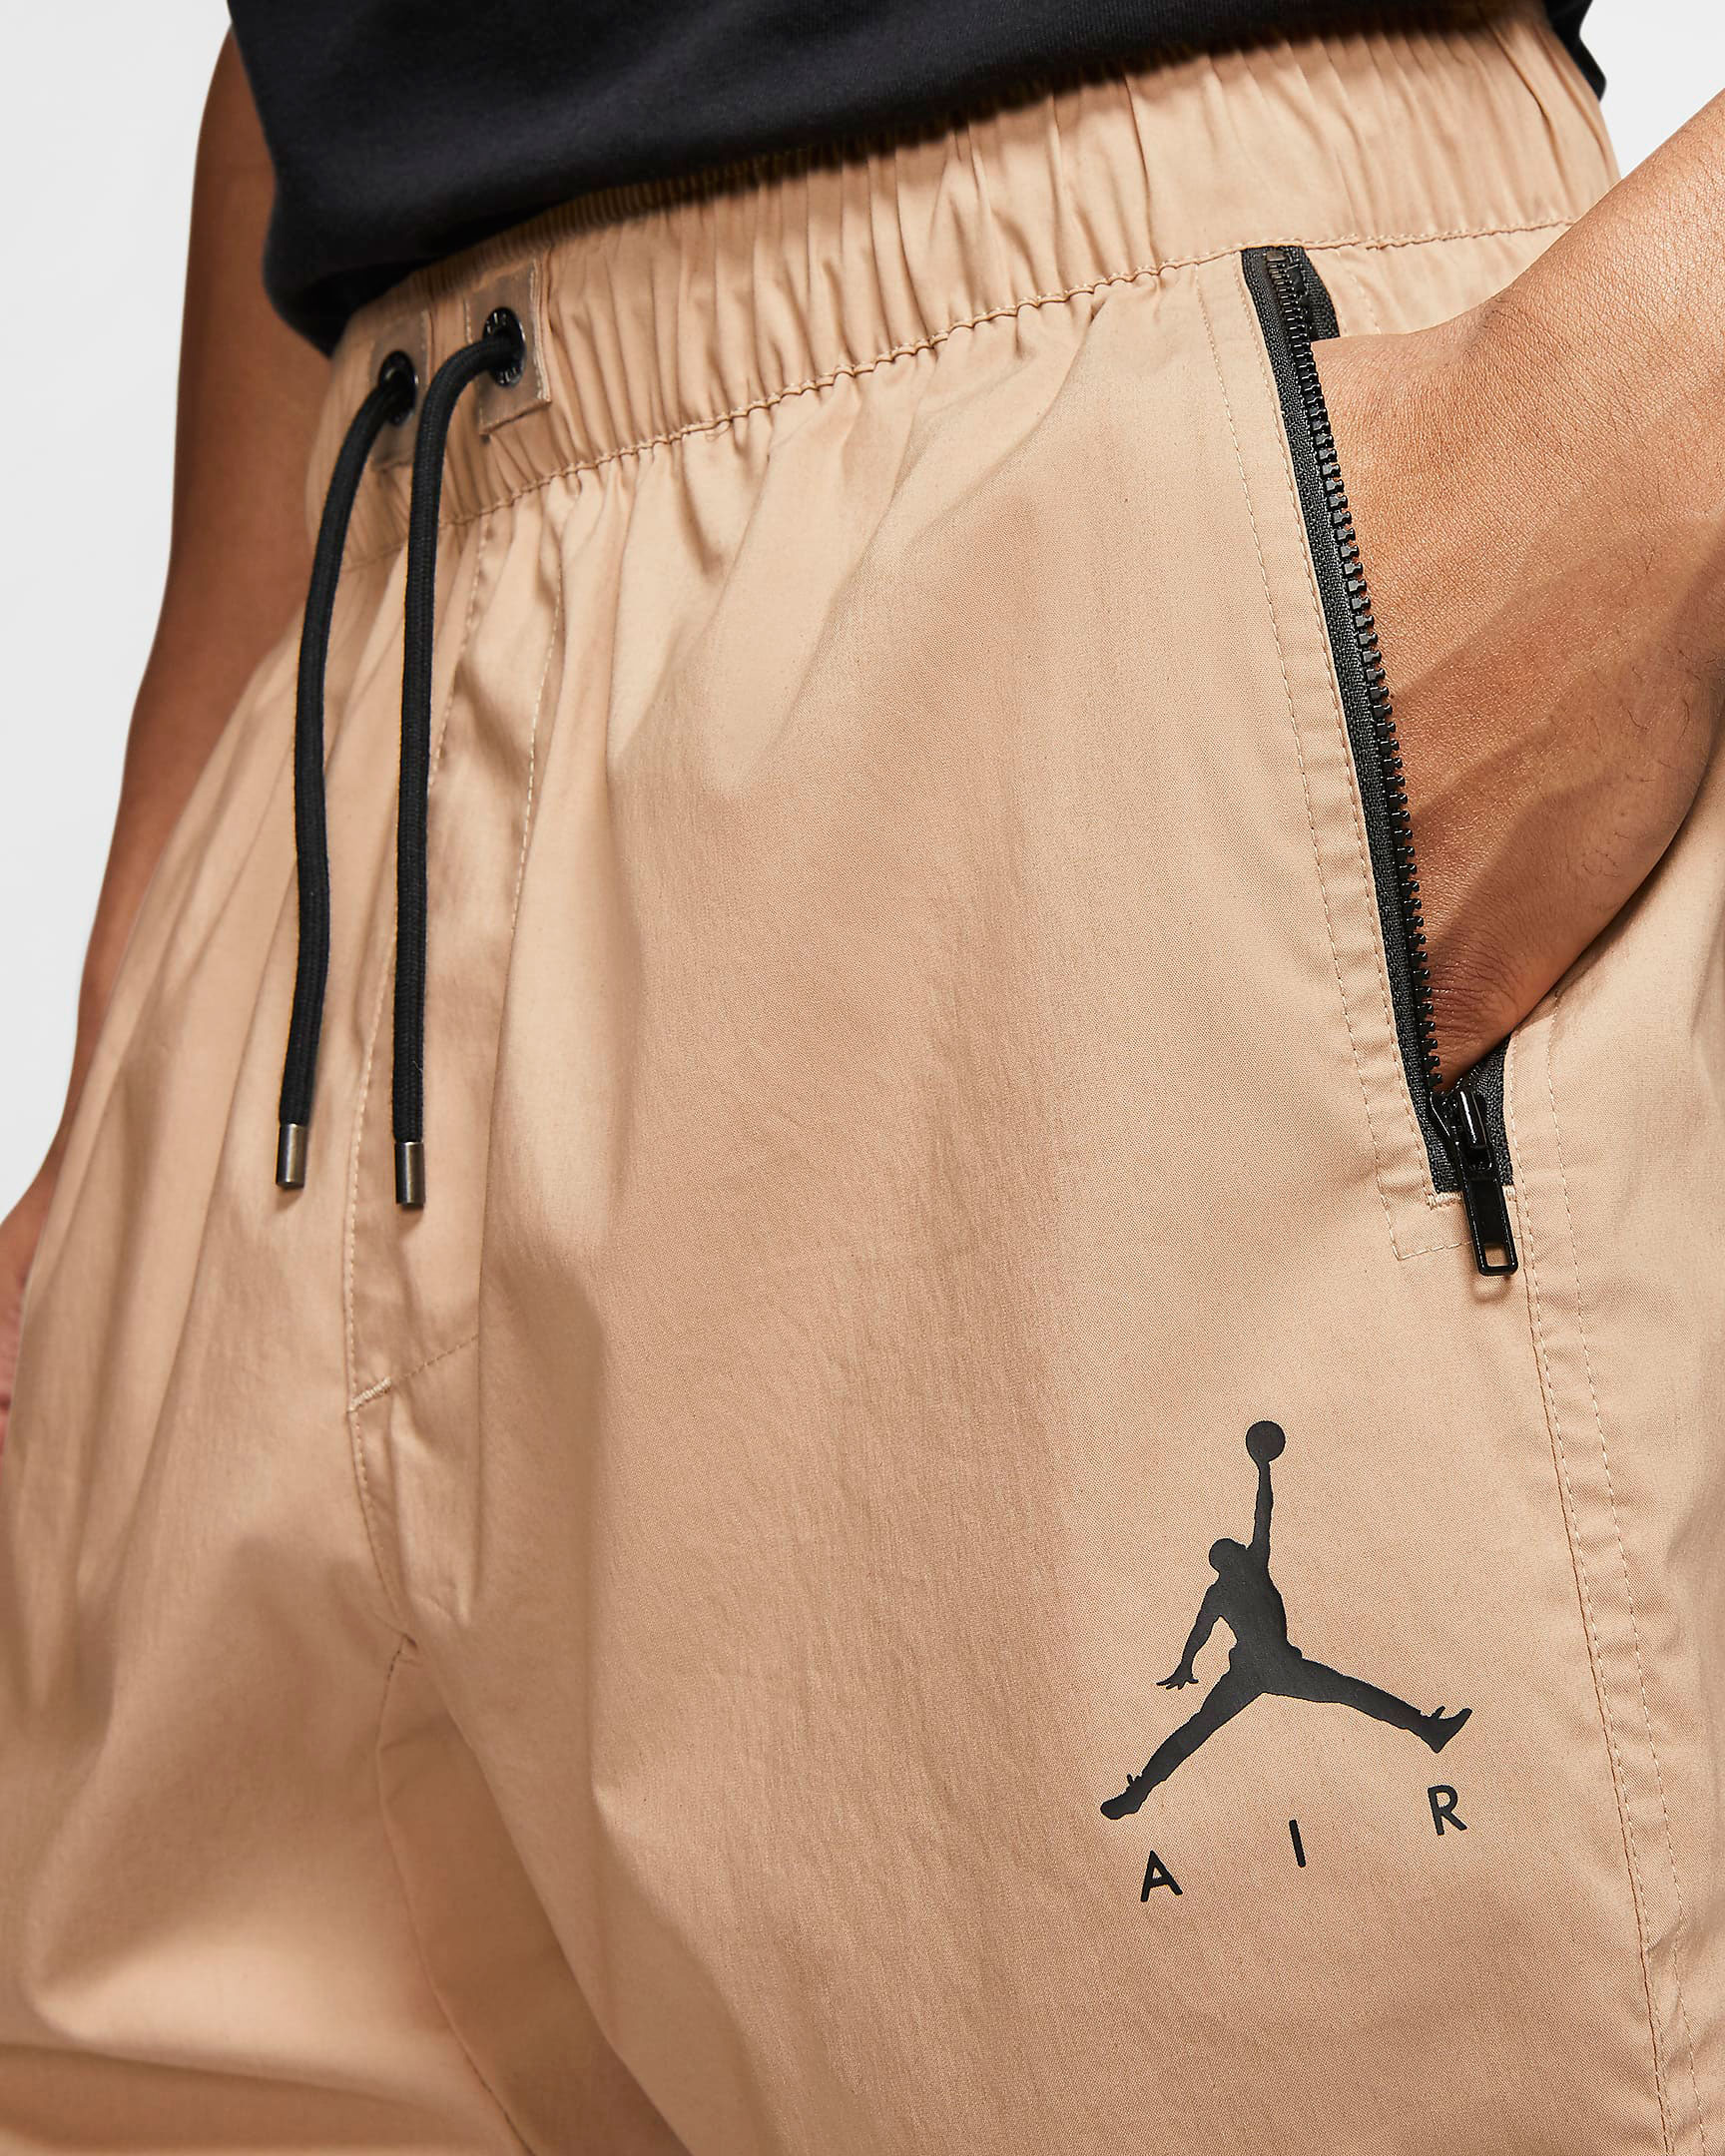 air-jordan-34-zoo-shorts-match-1